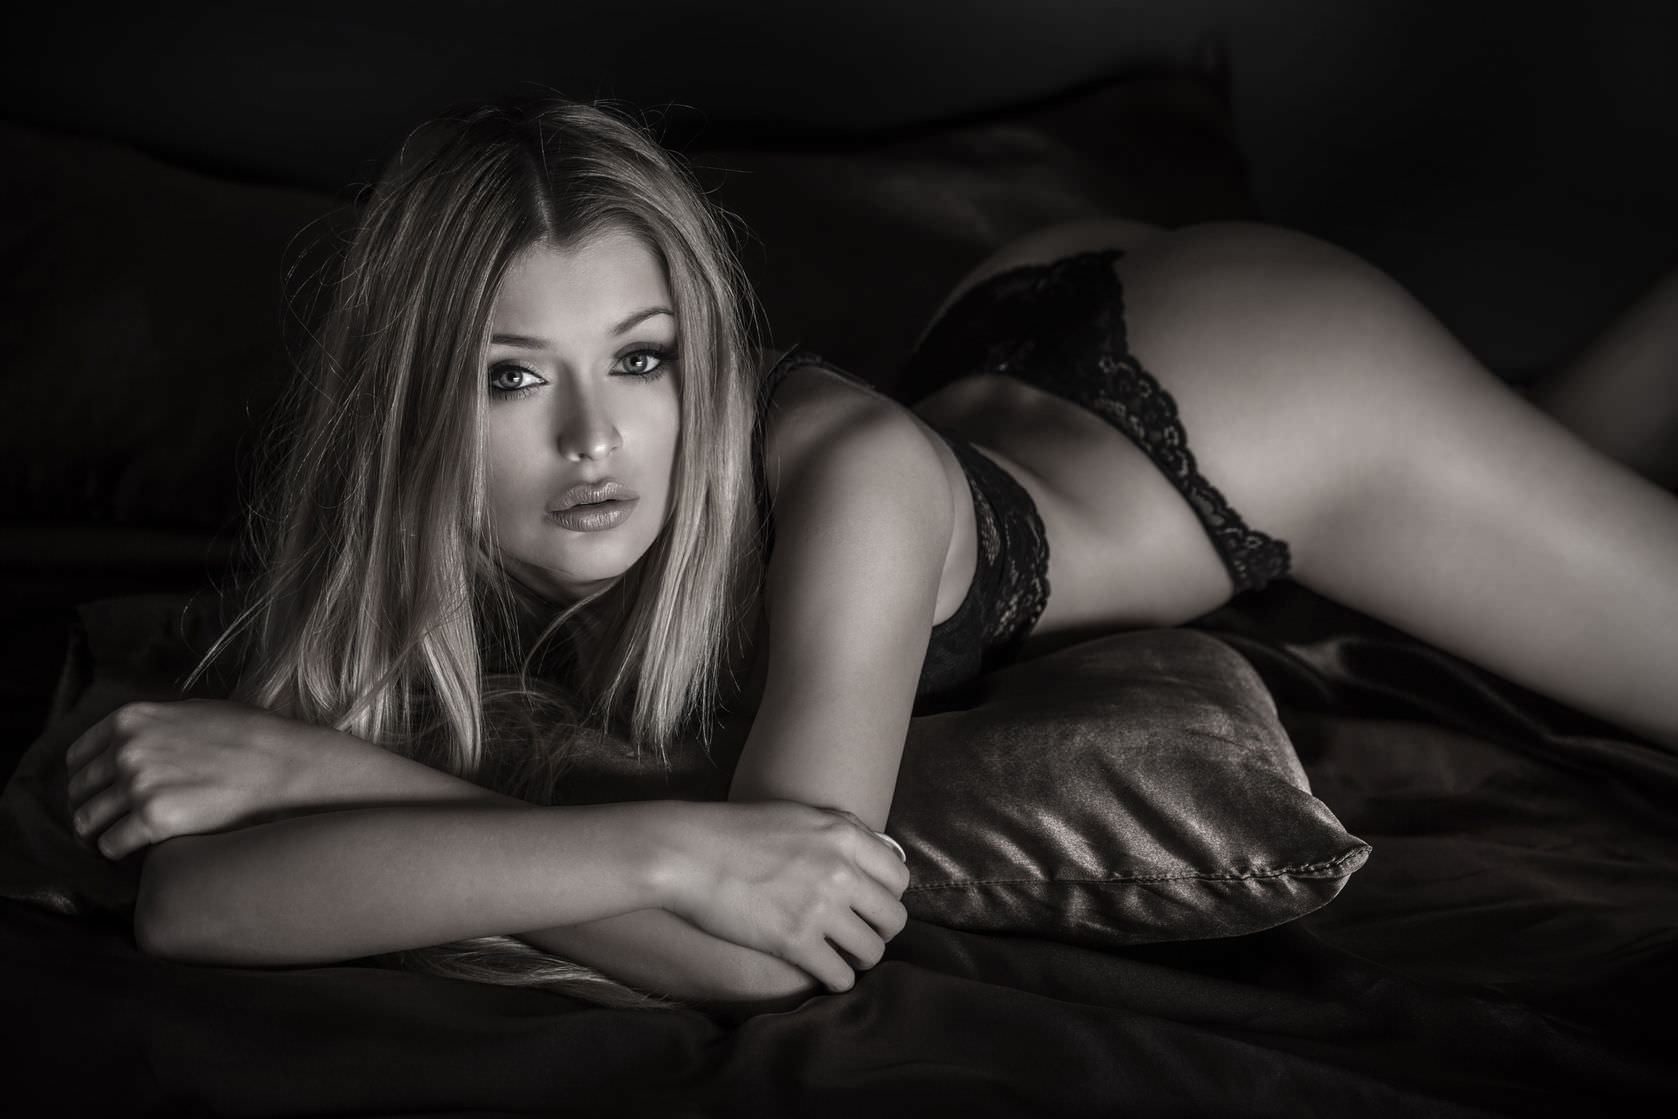 Woman in Lingerie image